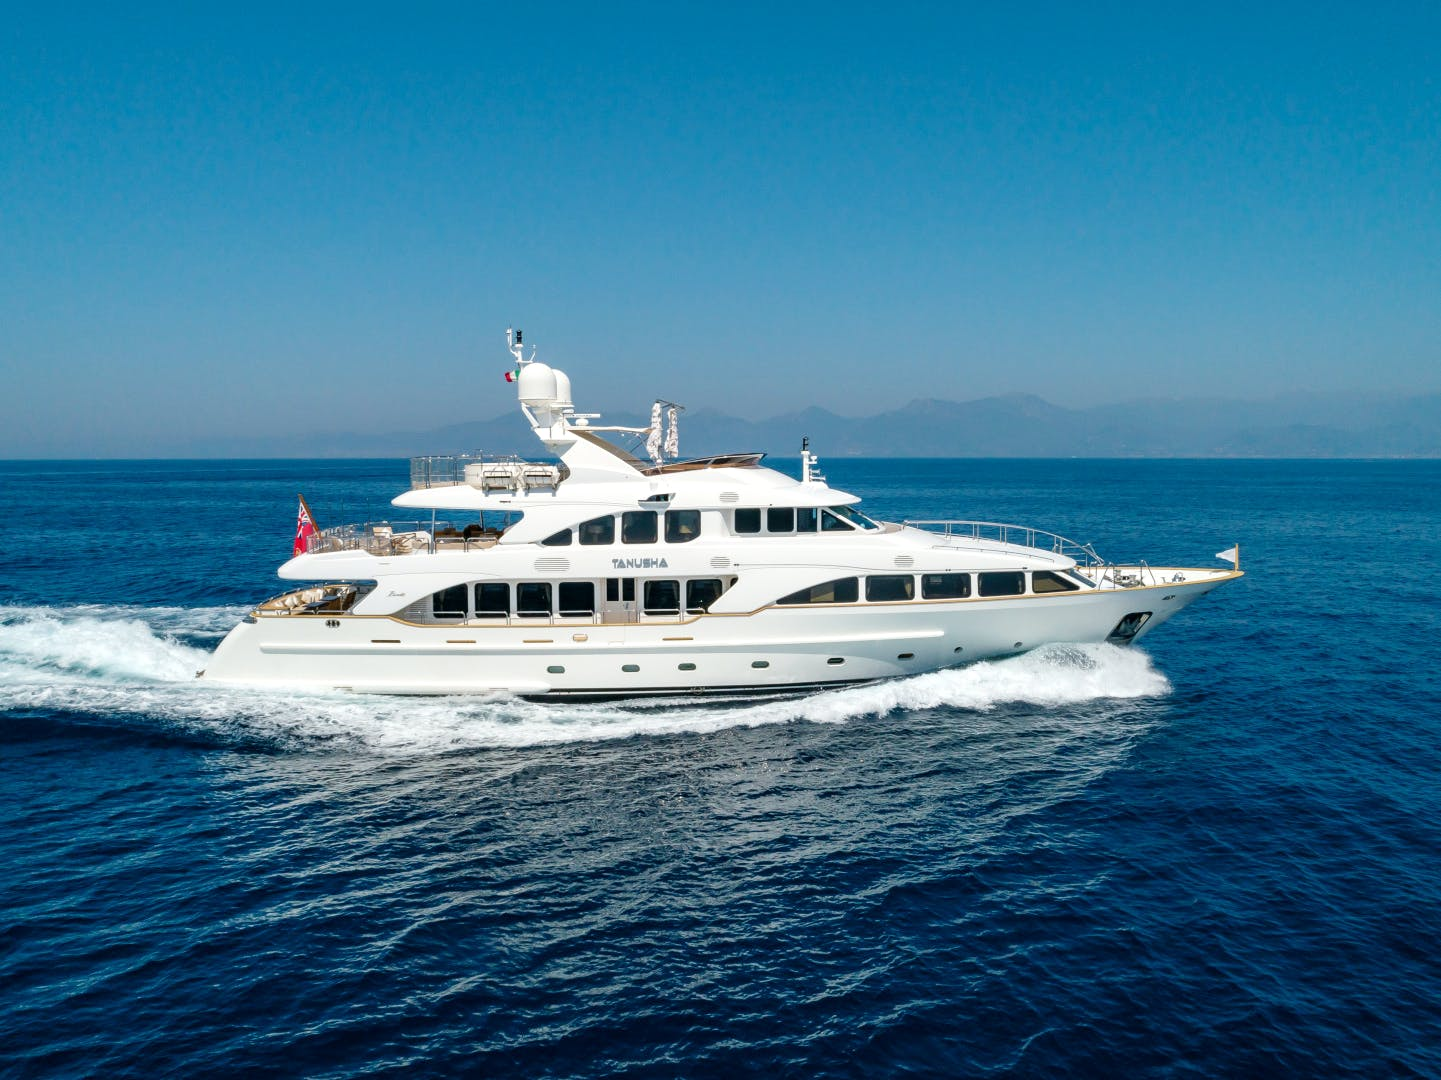 Benetti 120 yacht for sale TANUSHA profile